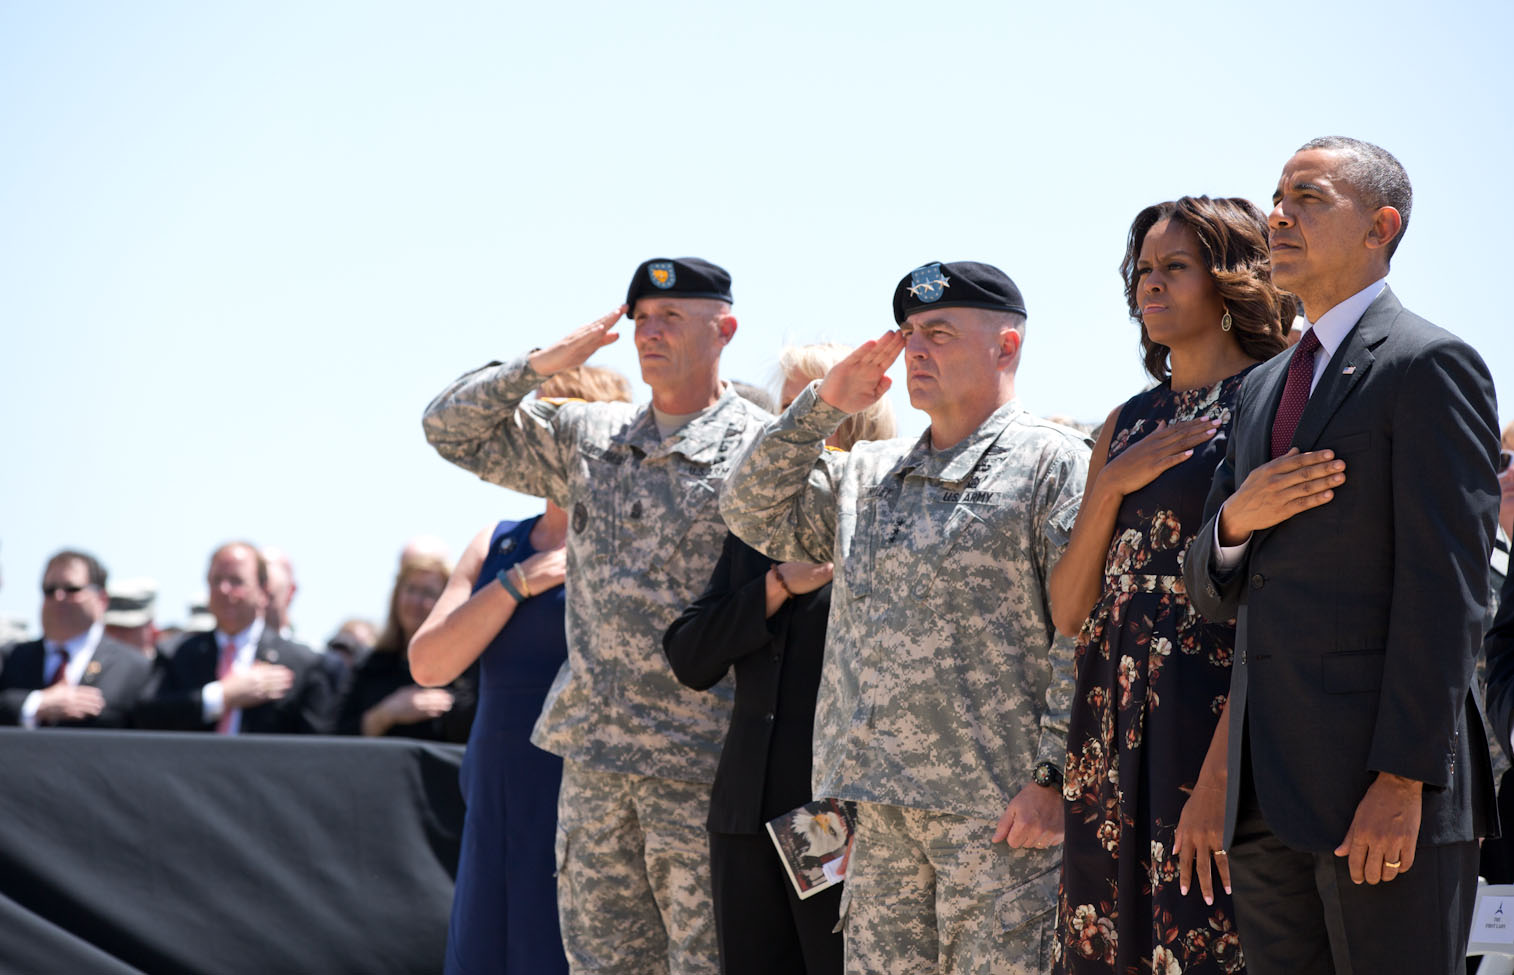 President Barack Obama and First Lady Michelle Obama join other officials during a memorial service for the victims of the Fort Hood shootings, at Fort Hood in Killeen, Texas